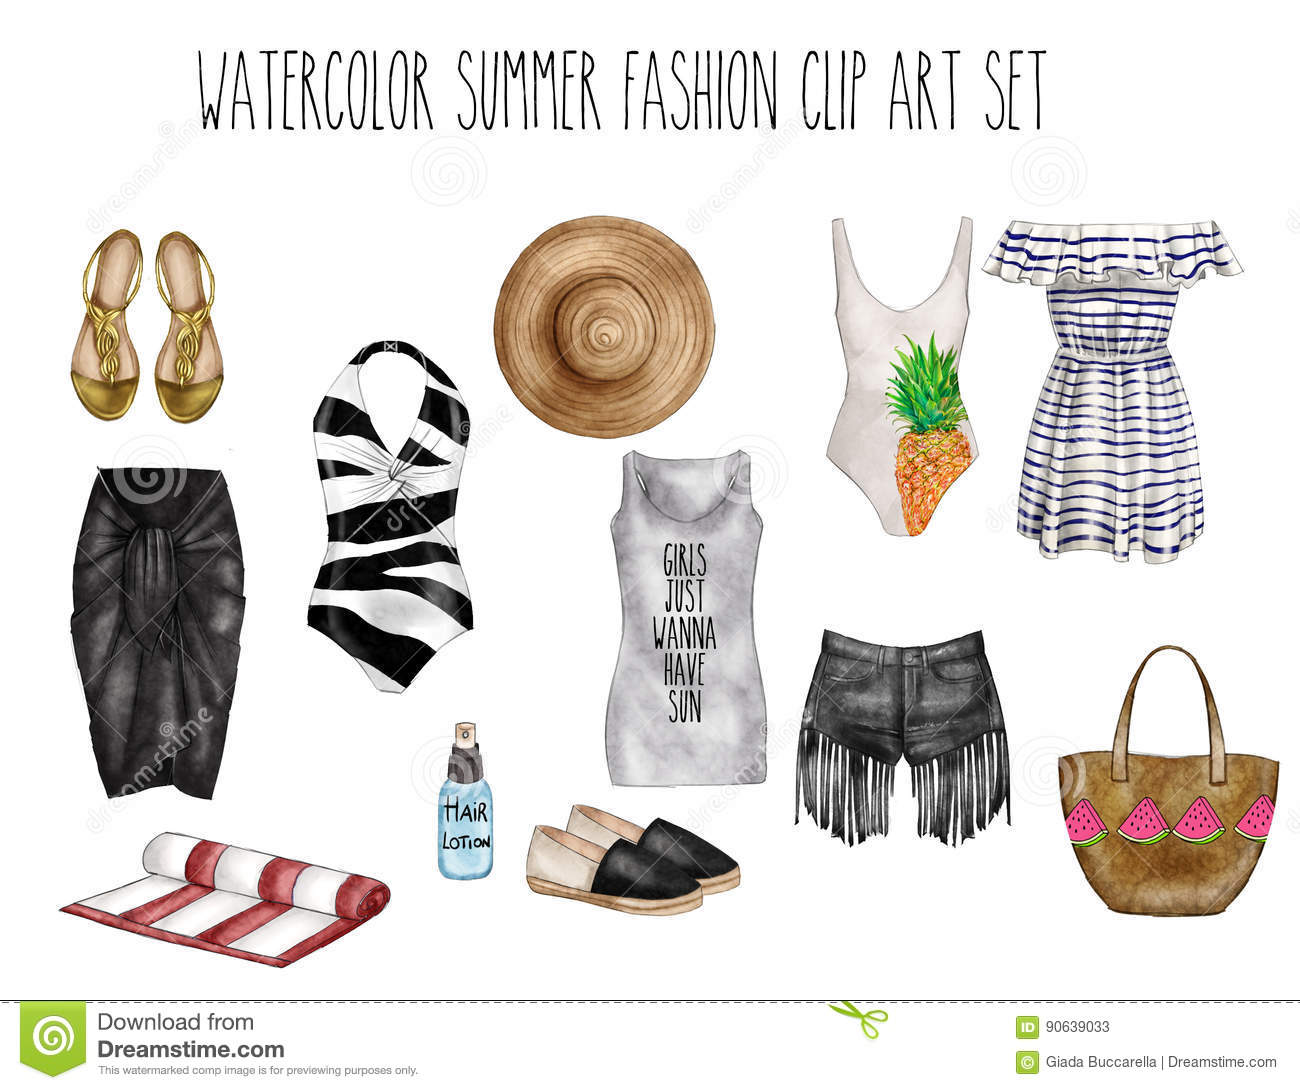 watercolor digital illustration watercolor fashion clip art set